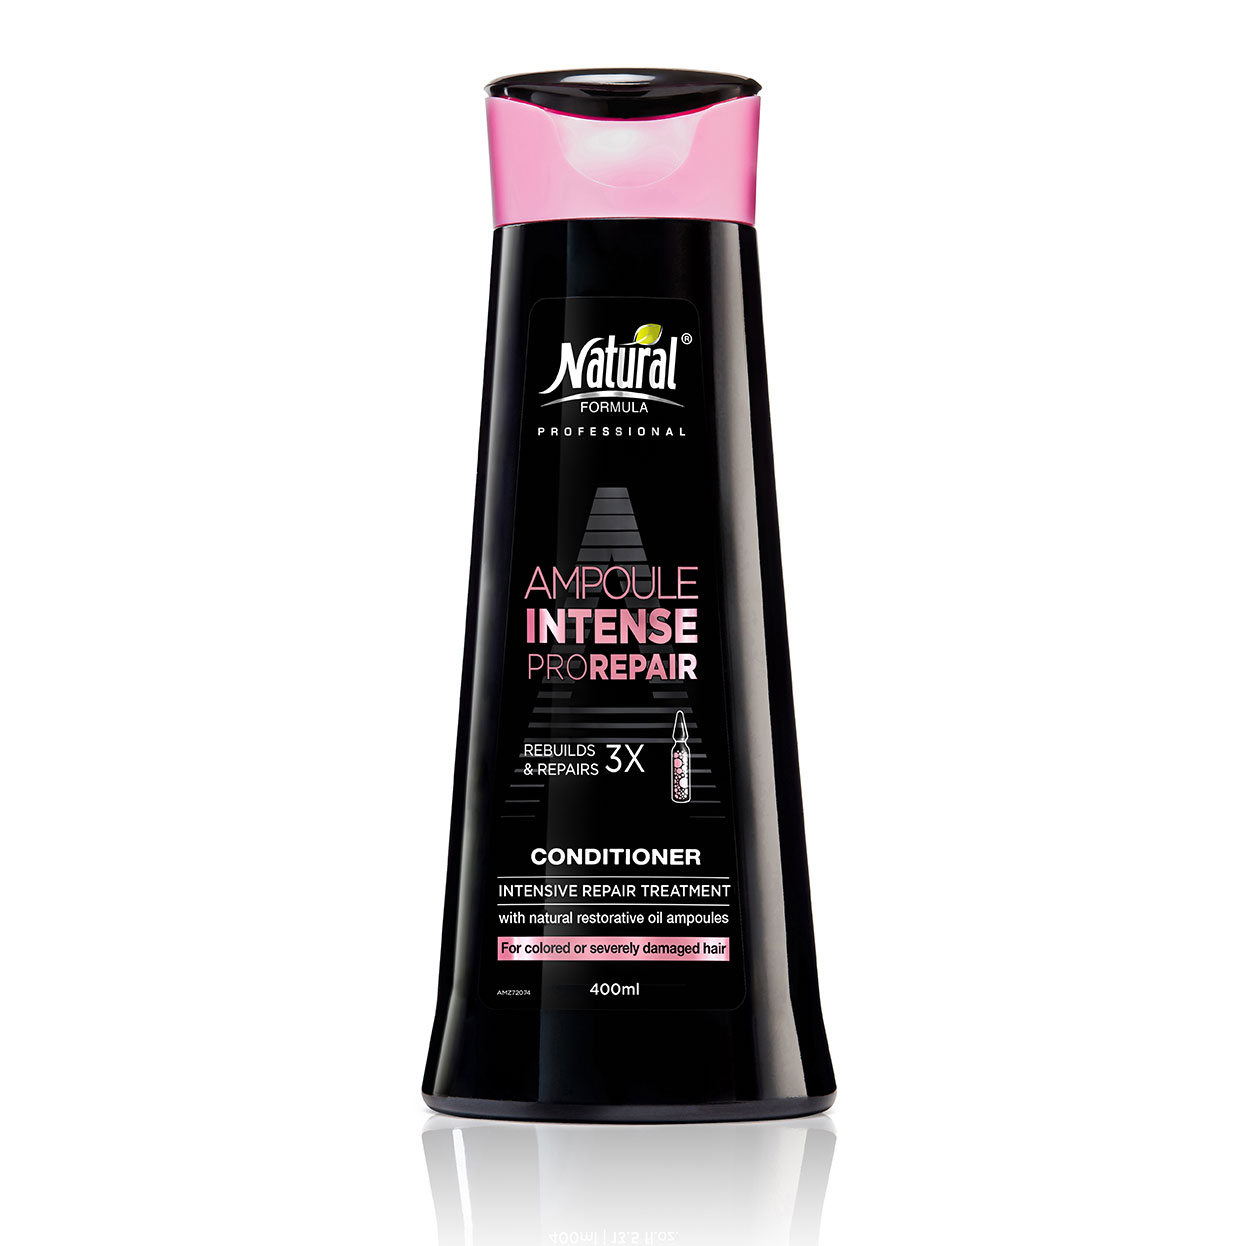 Ampoule Intense Conditioner